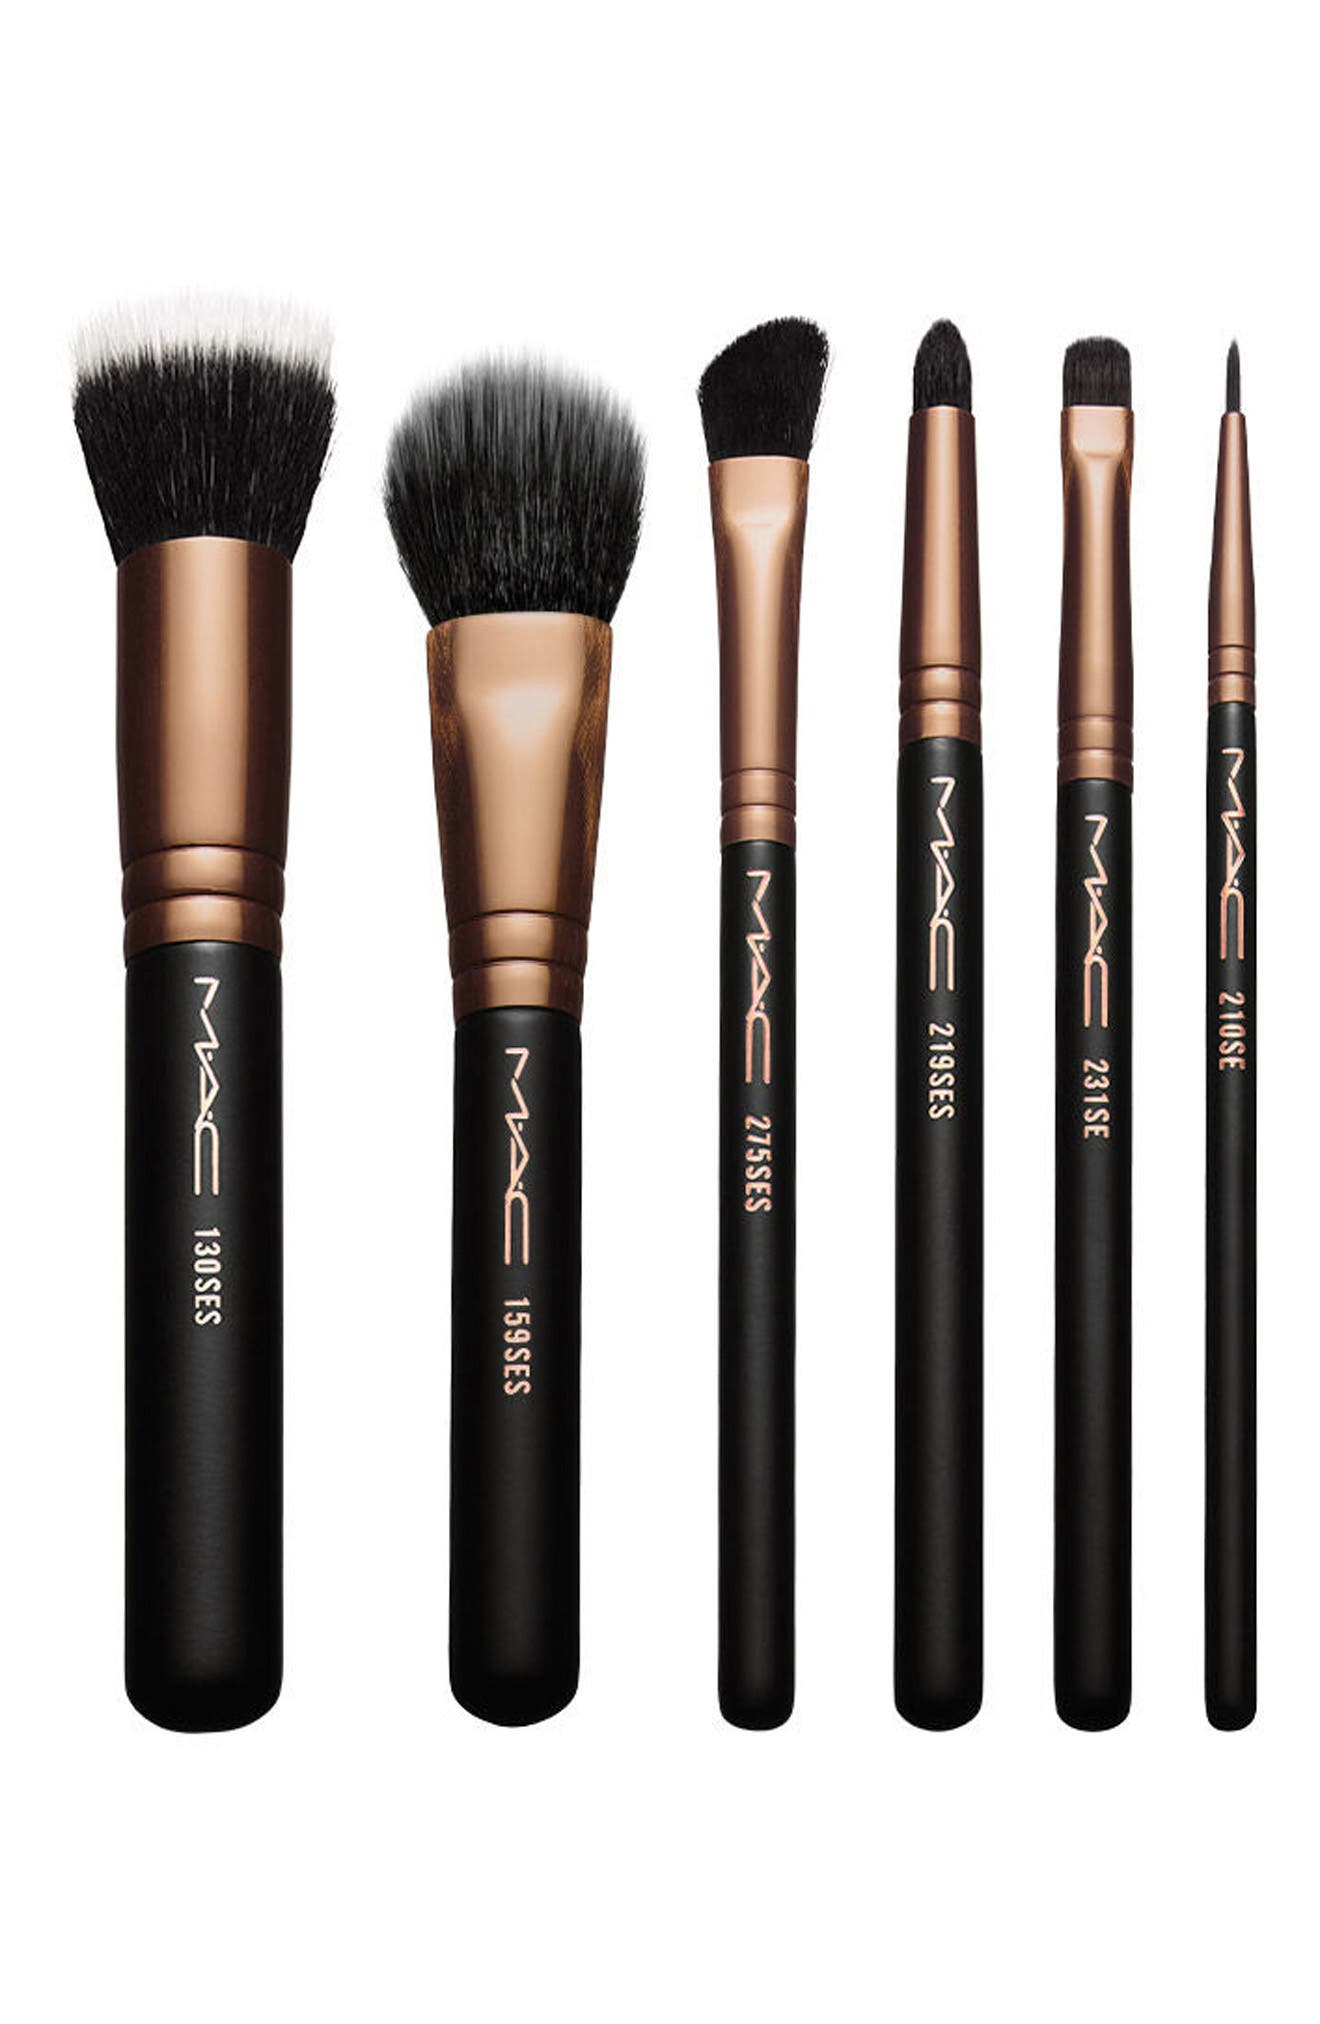 MAC Look in a Box Advanced Brush Kit ($167 Value)